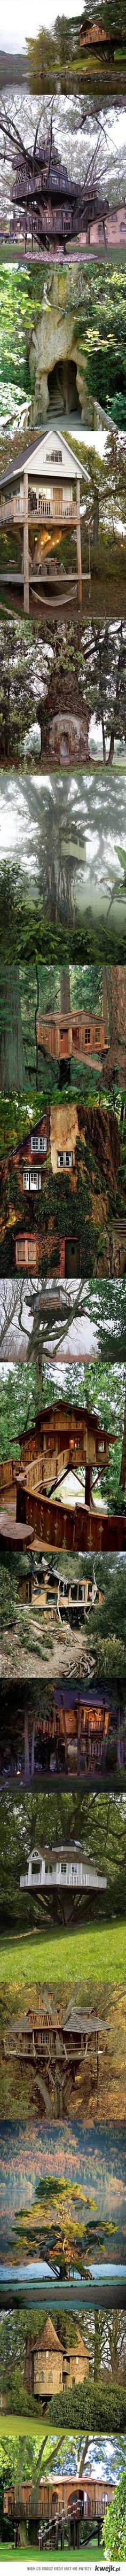 i need a grownup tree house